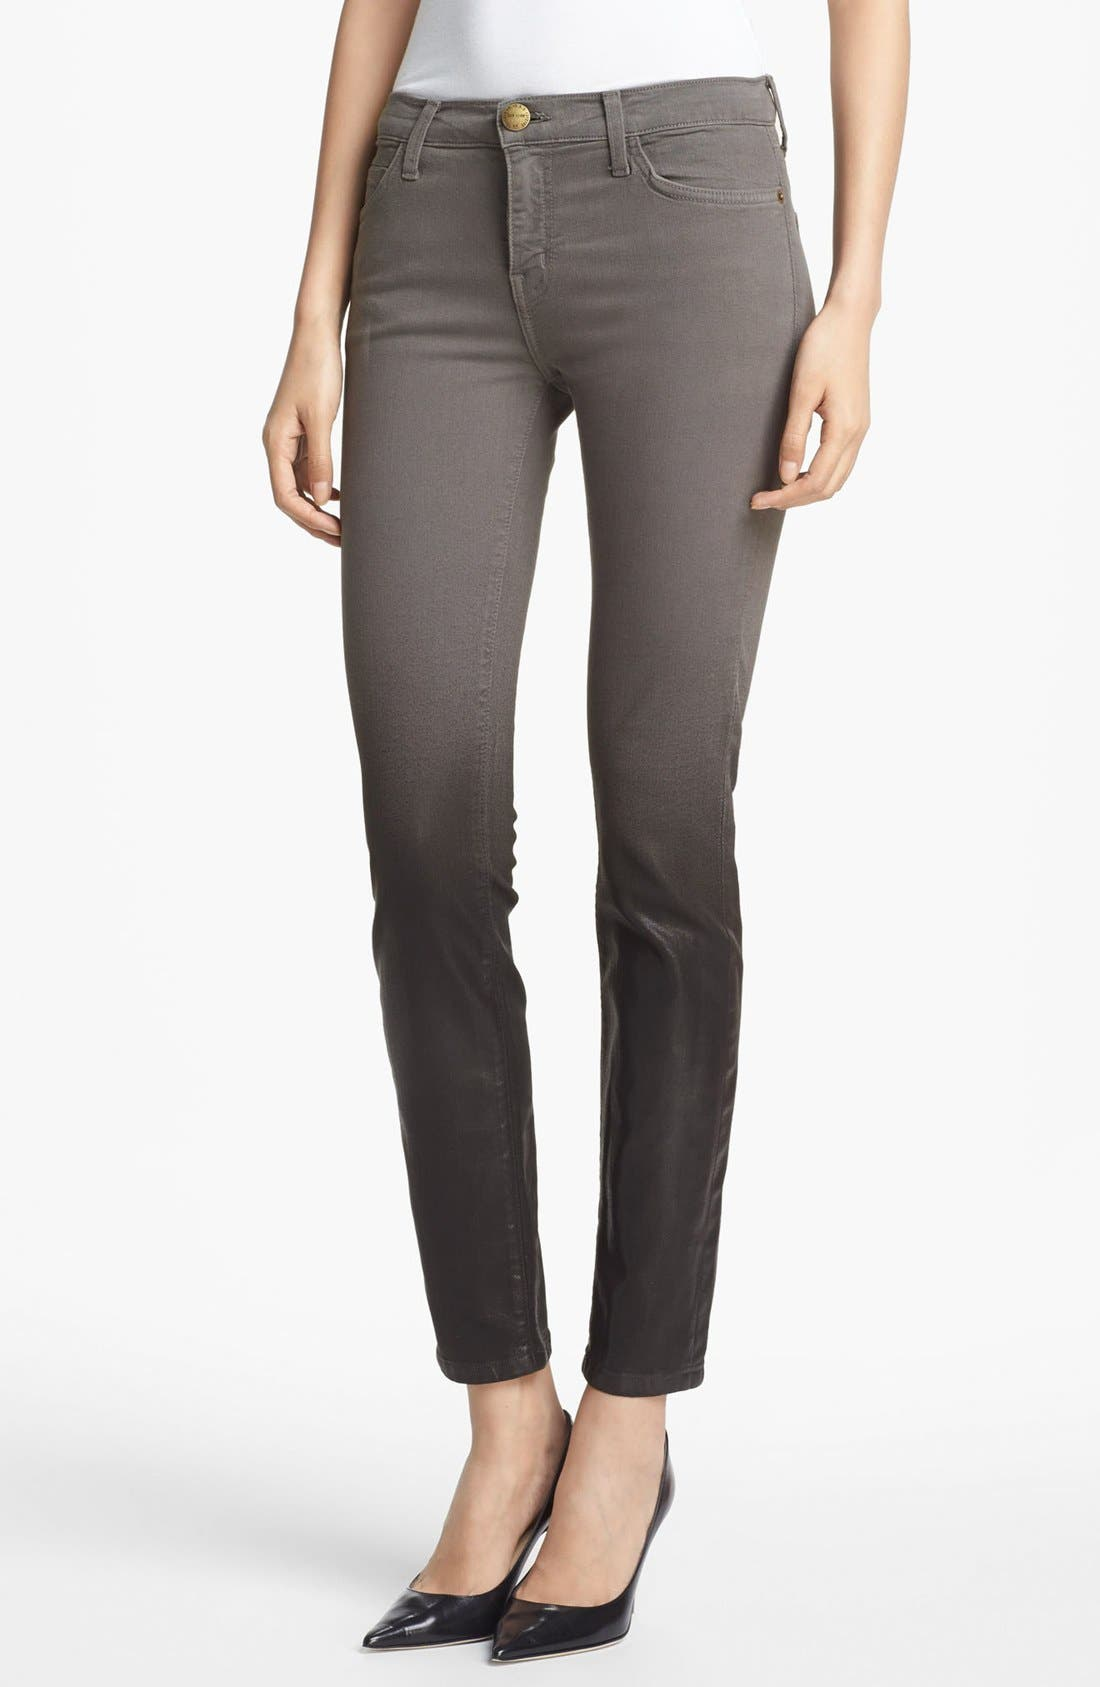 Alternate Image 1 Selected - Current/Elliott 'The Stiletto' Coated Stretch Jeans (Ombré Coated Dark Castle)